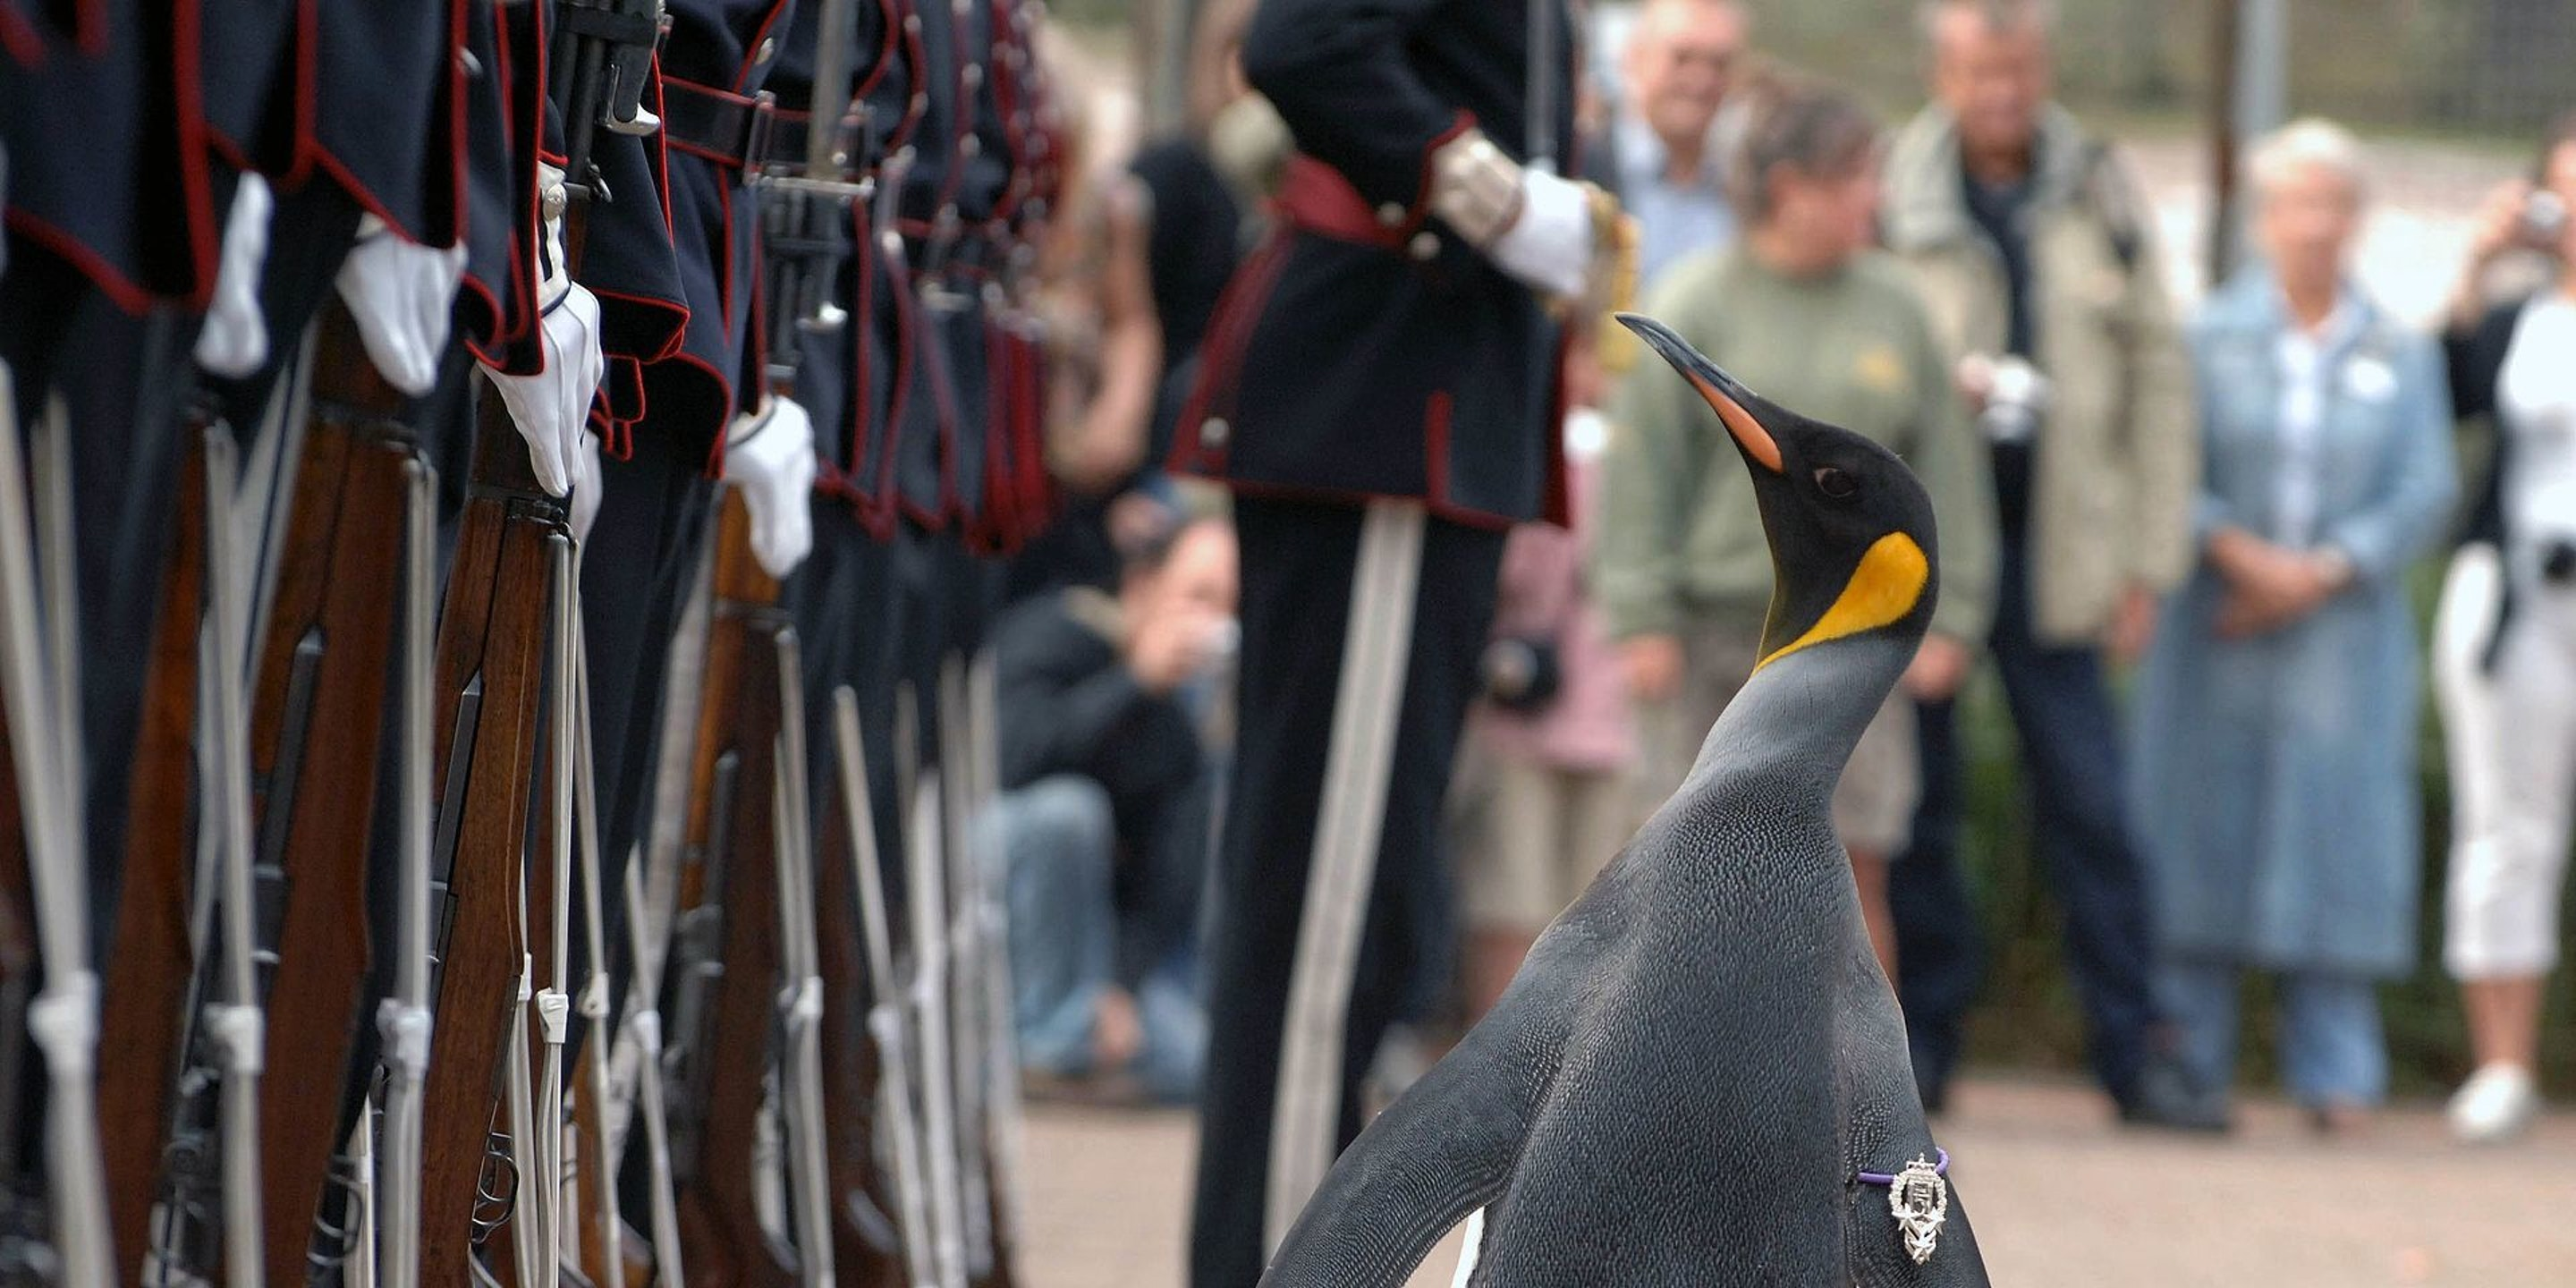 This penguin is a brigadier of Norway.